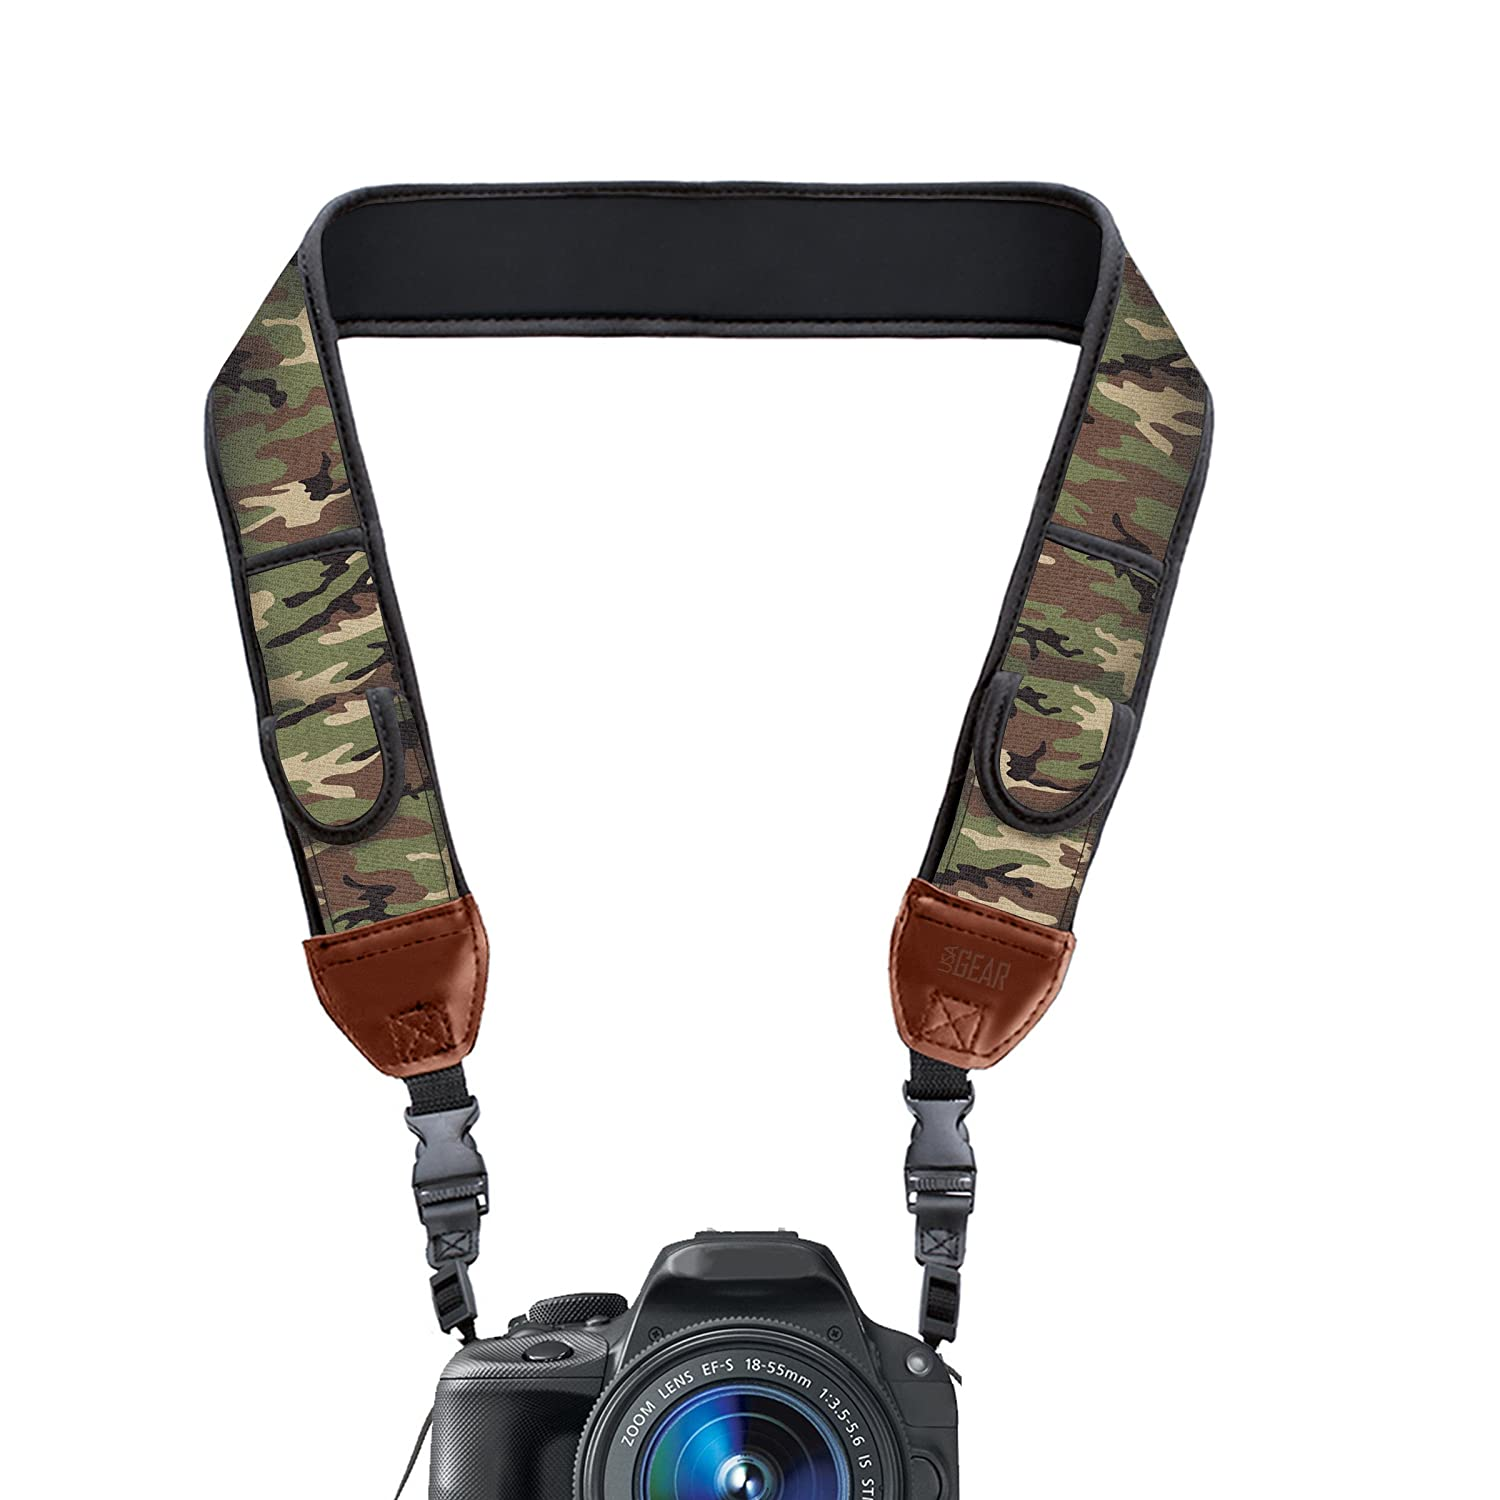 TrueSHOT Neoprene Camera Neck Strap with Quick Release Buckles and Accessory Storage Pockets (Southwest Grey) by USA Gear - Works With Nikon Coolpix P900 , B500 , D3300 and More Cameras Accessory Power 4332159848